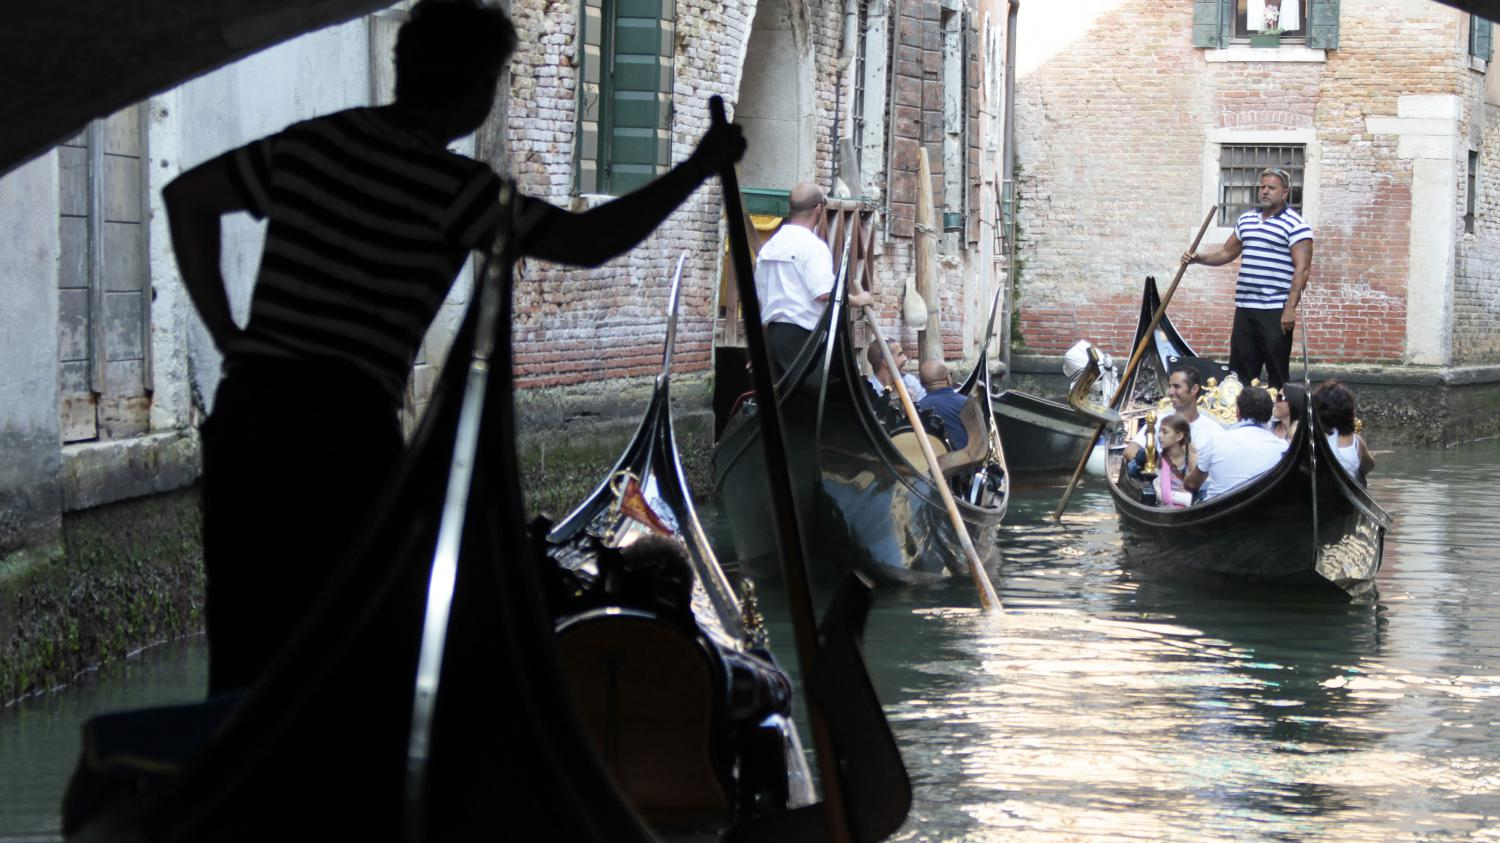 VIDEO. A Venise, les habitants ne supportent plus les touristes qui ...